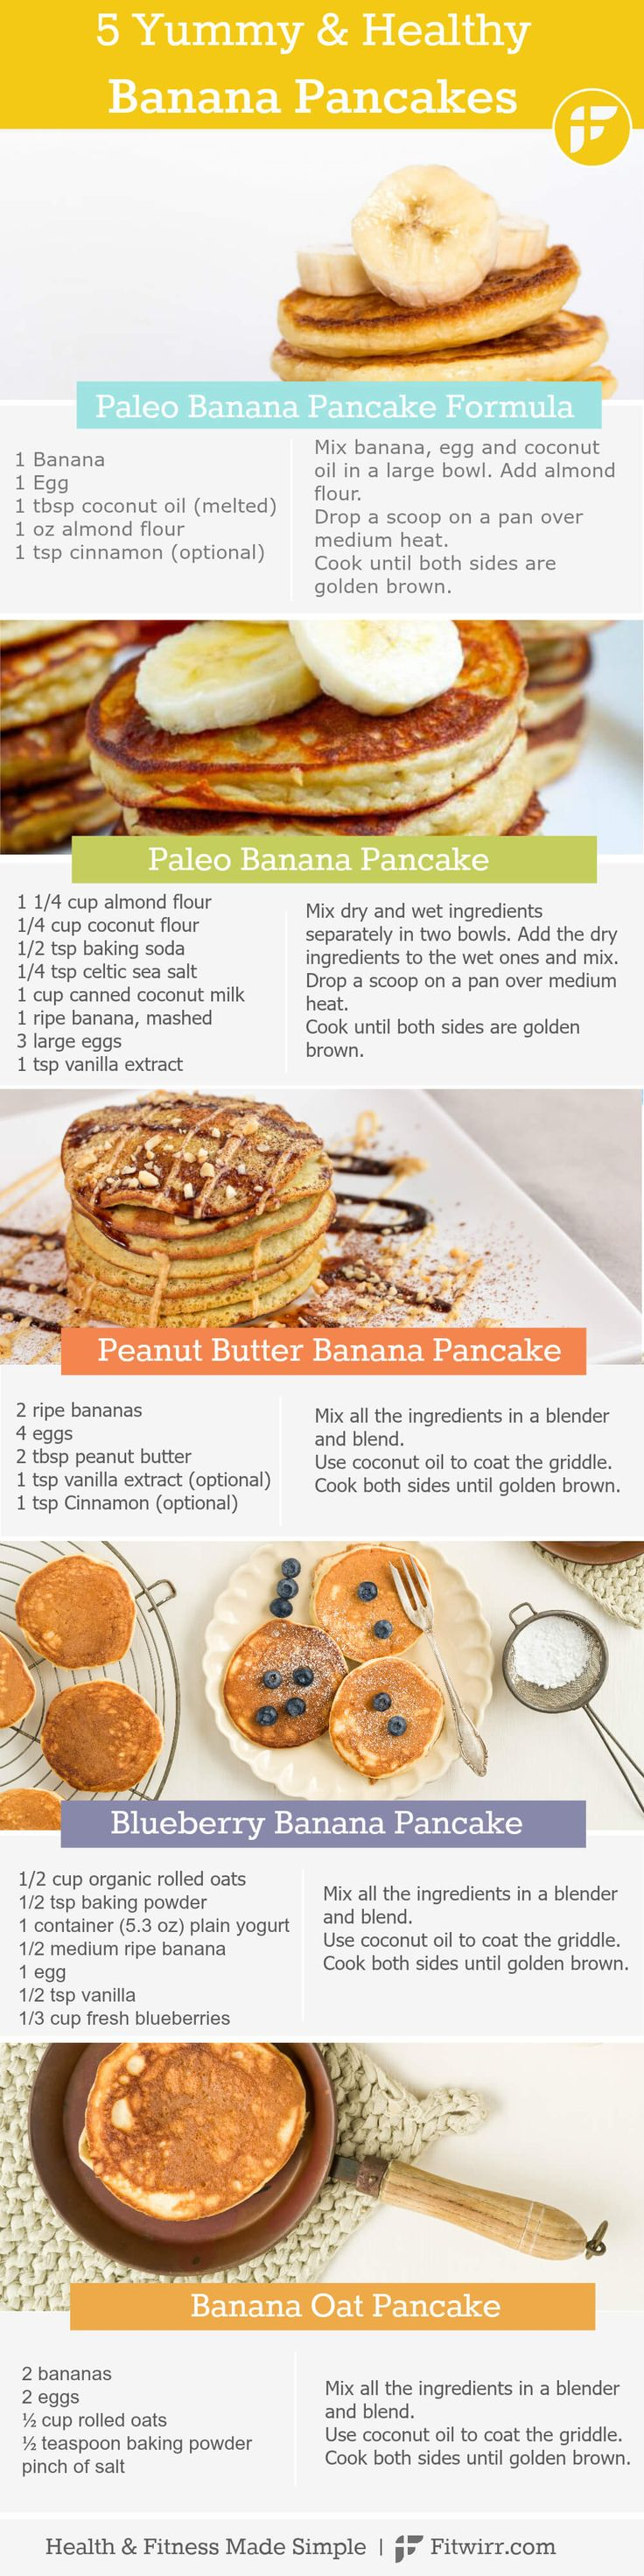 5 Delicious Banana Pancakes You Won't Believe Are Healthy